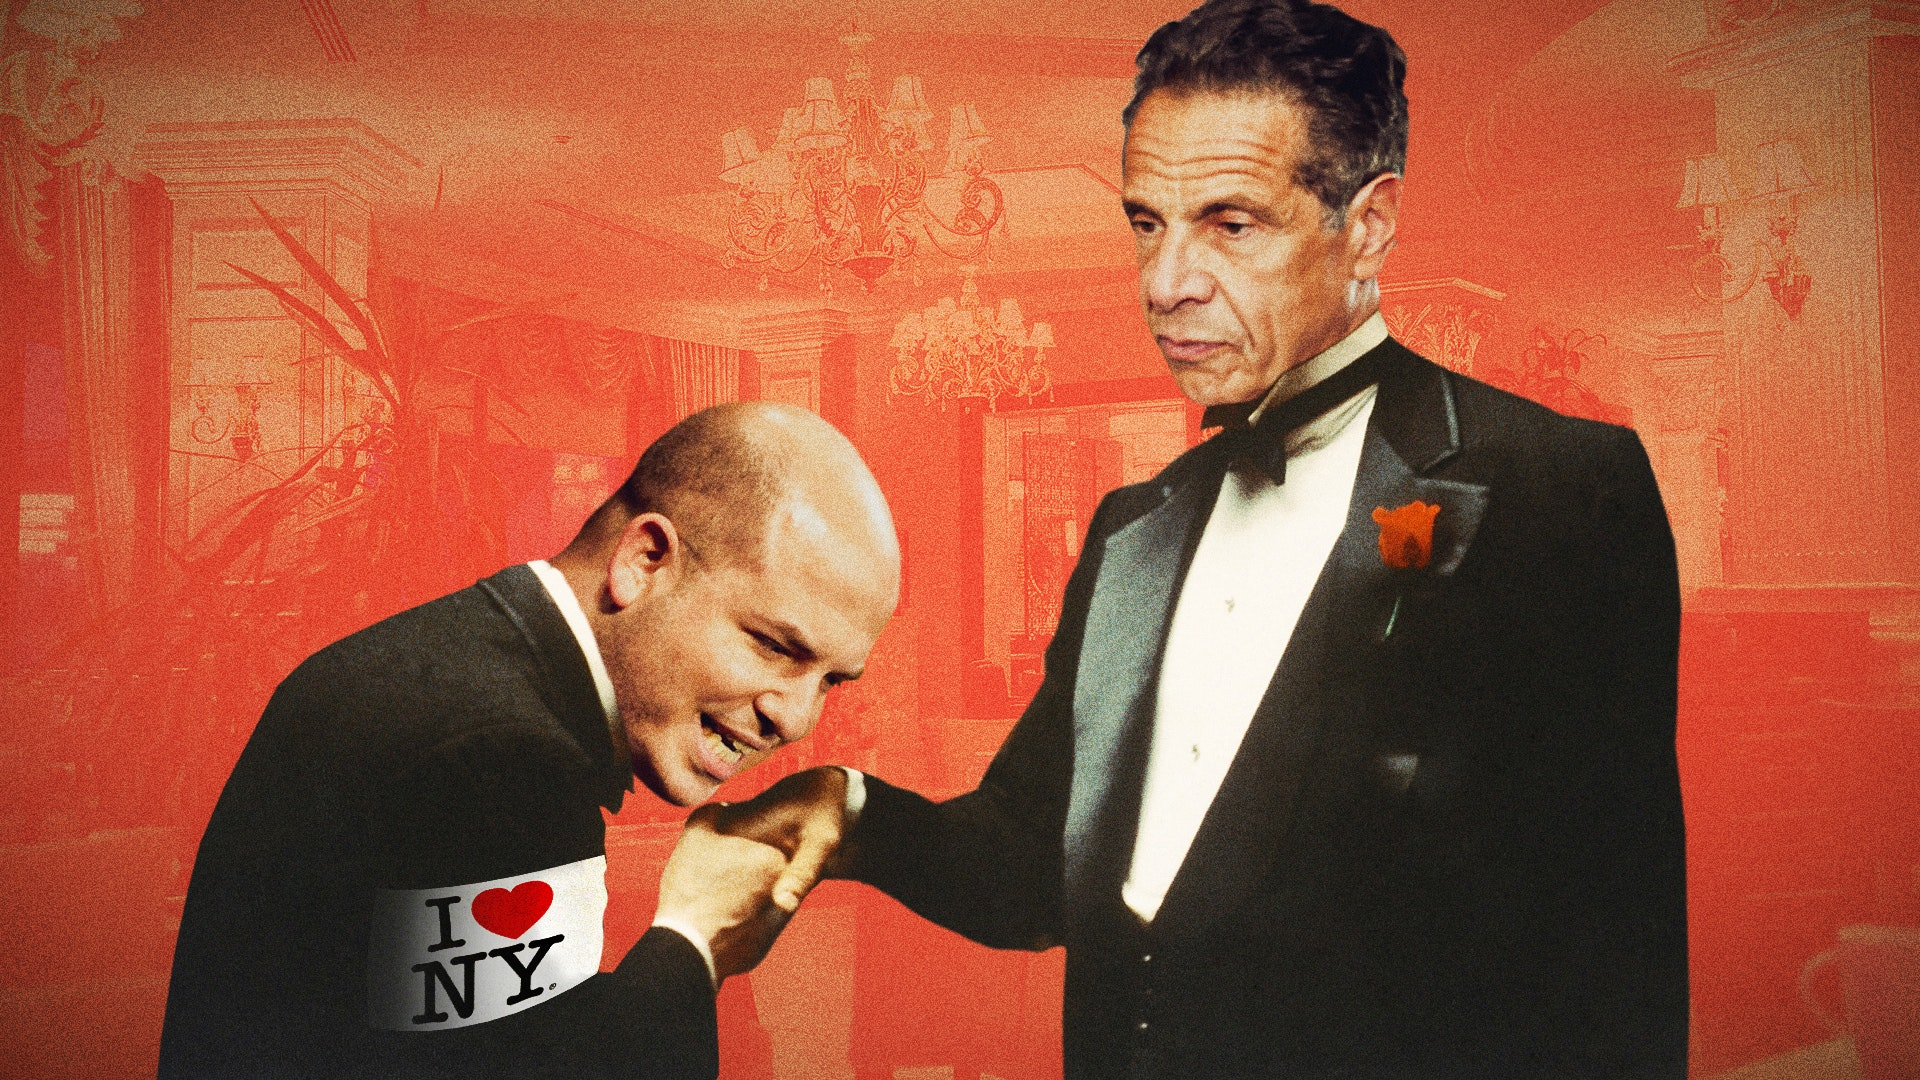 Ep. 814 - An Offer You Can't Refuse